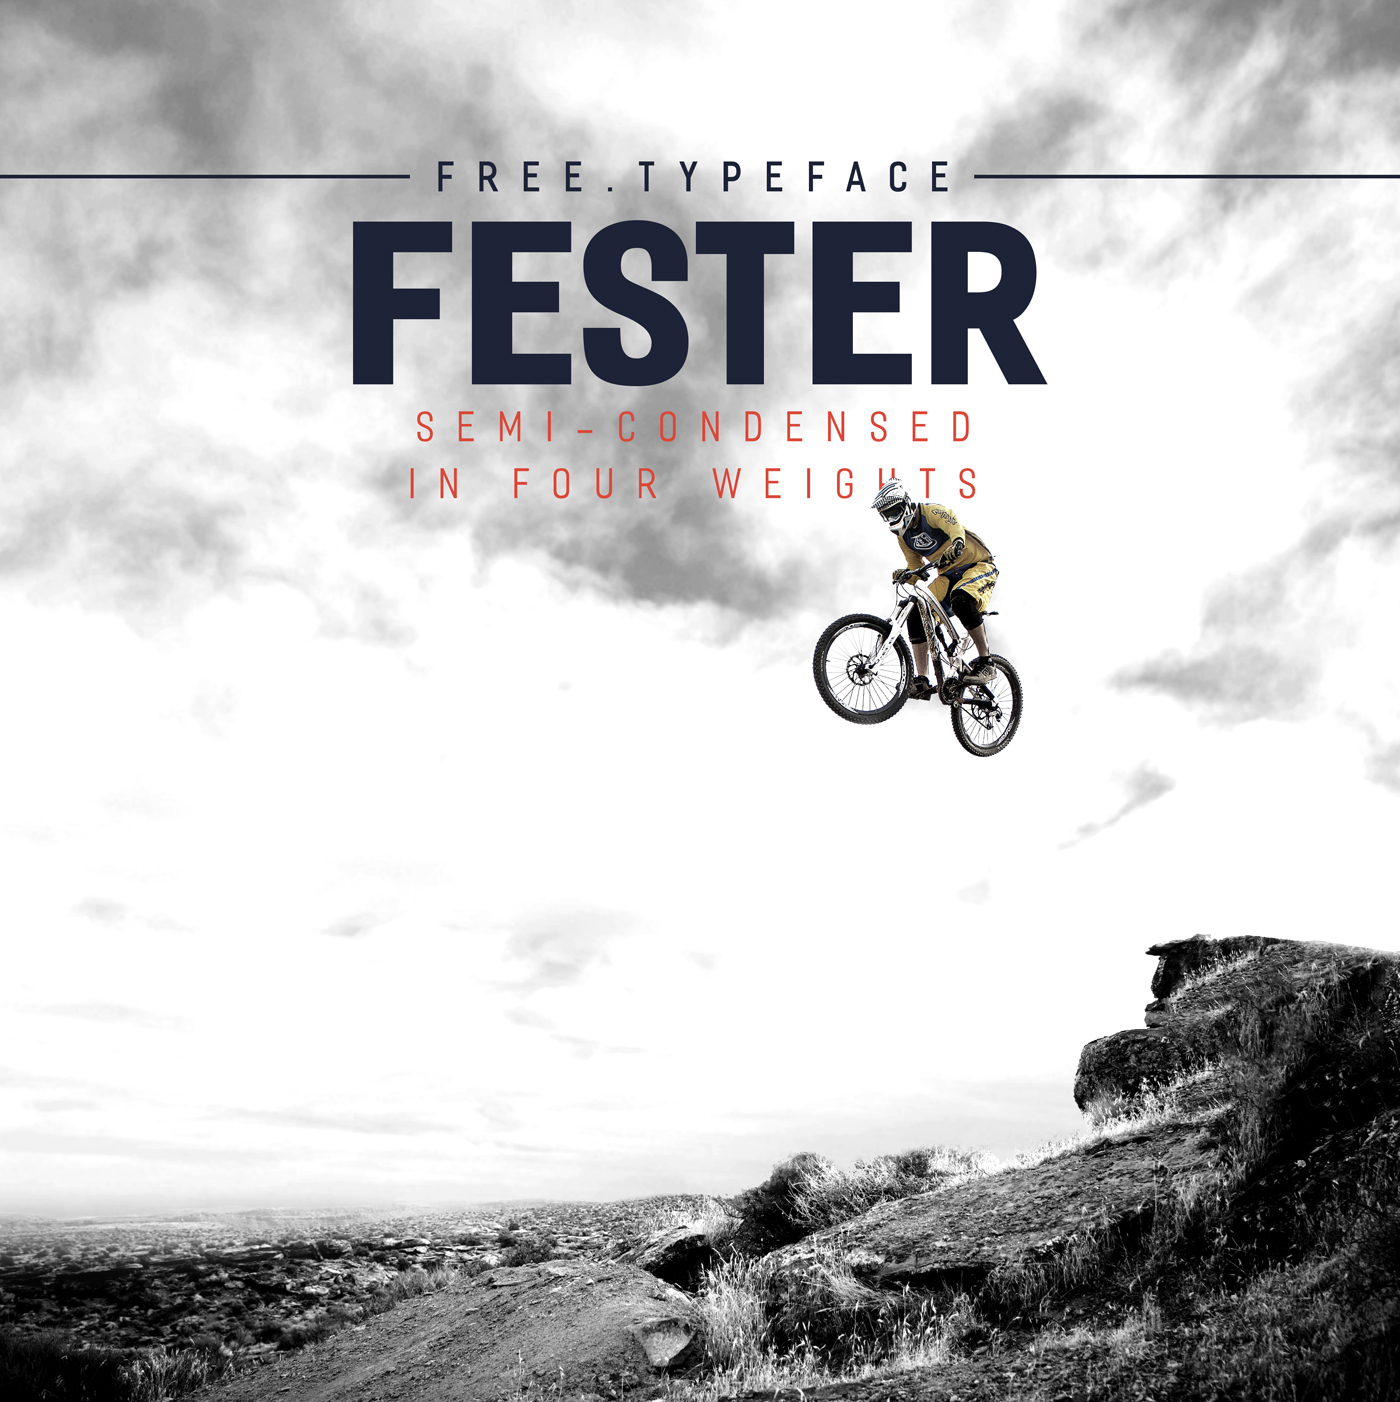 Free Download: Fester Typeface